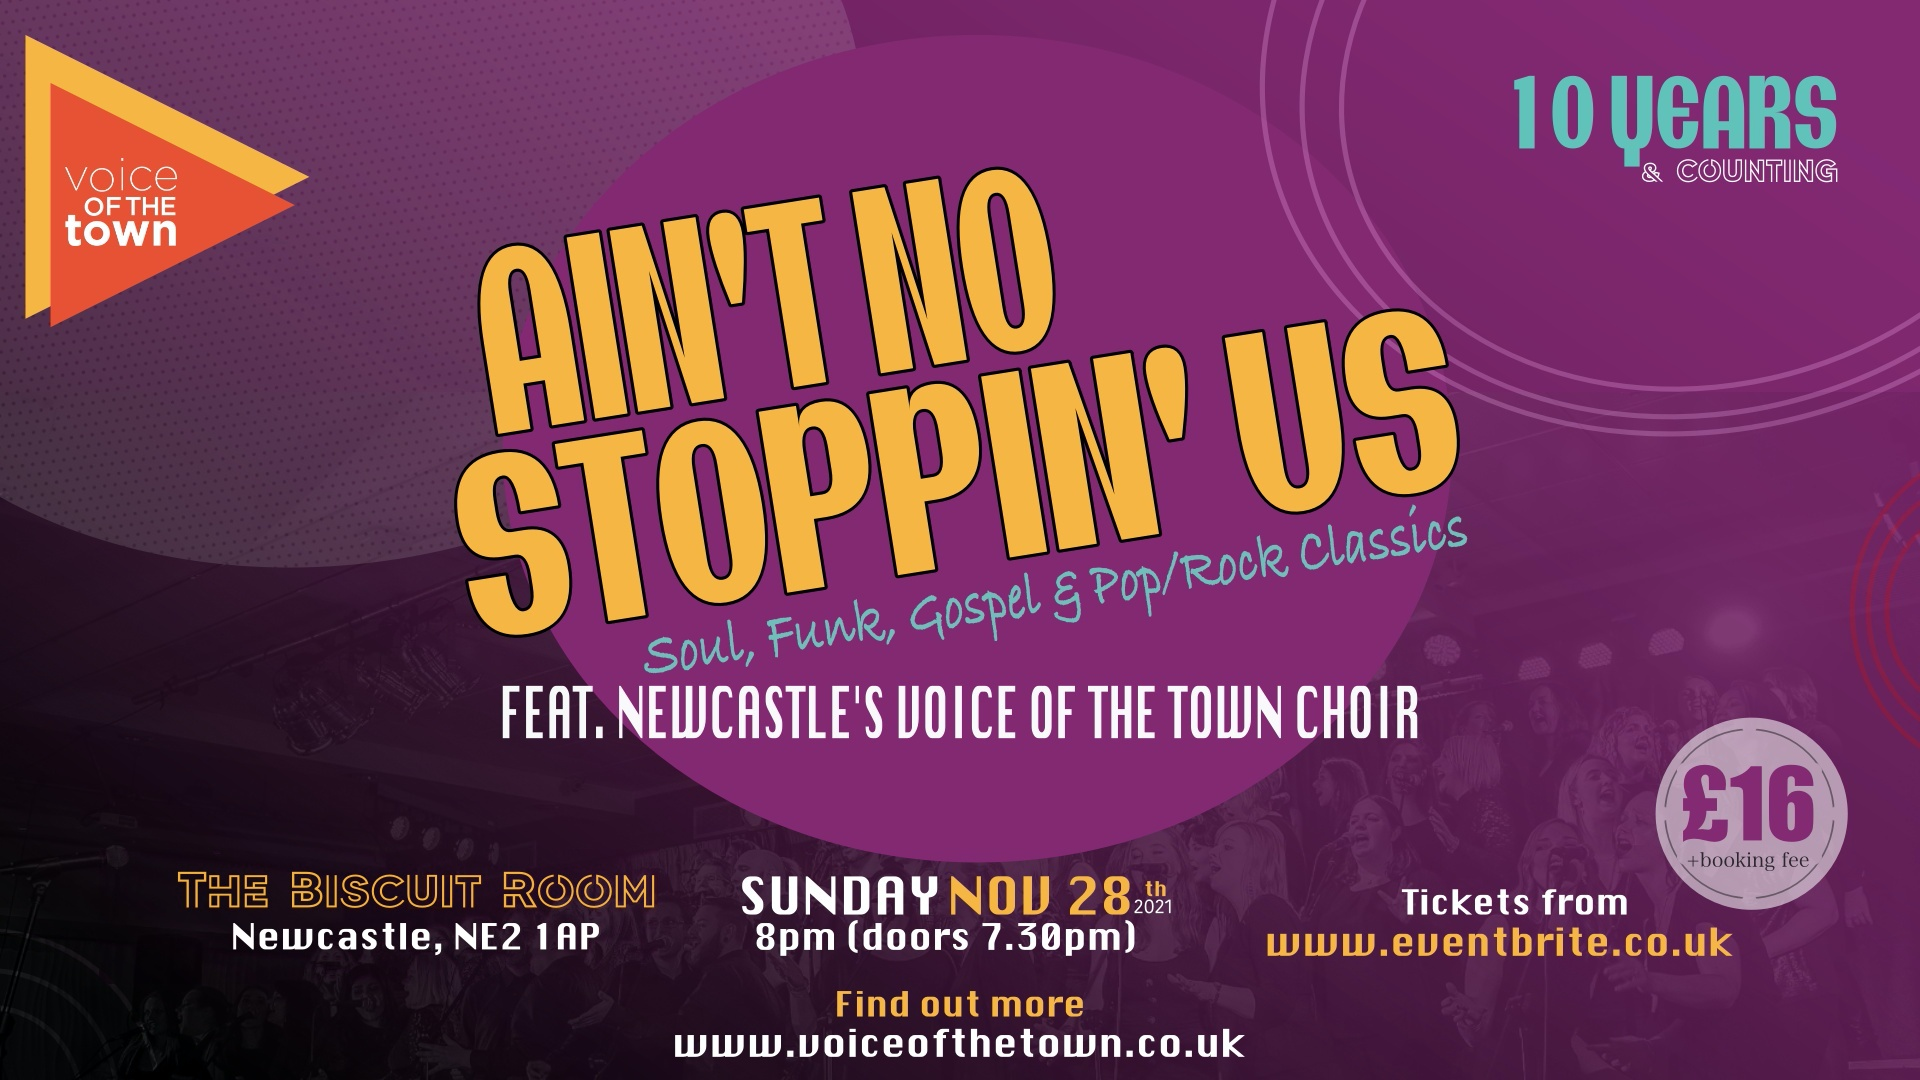 Voice of the Town Ain't No Stoppin' Us Gig Banner